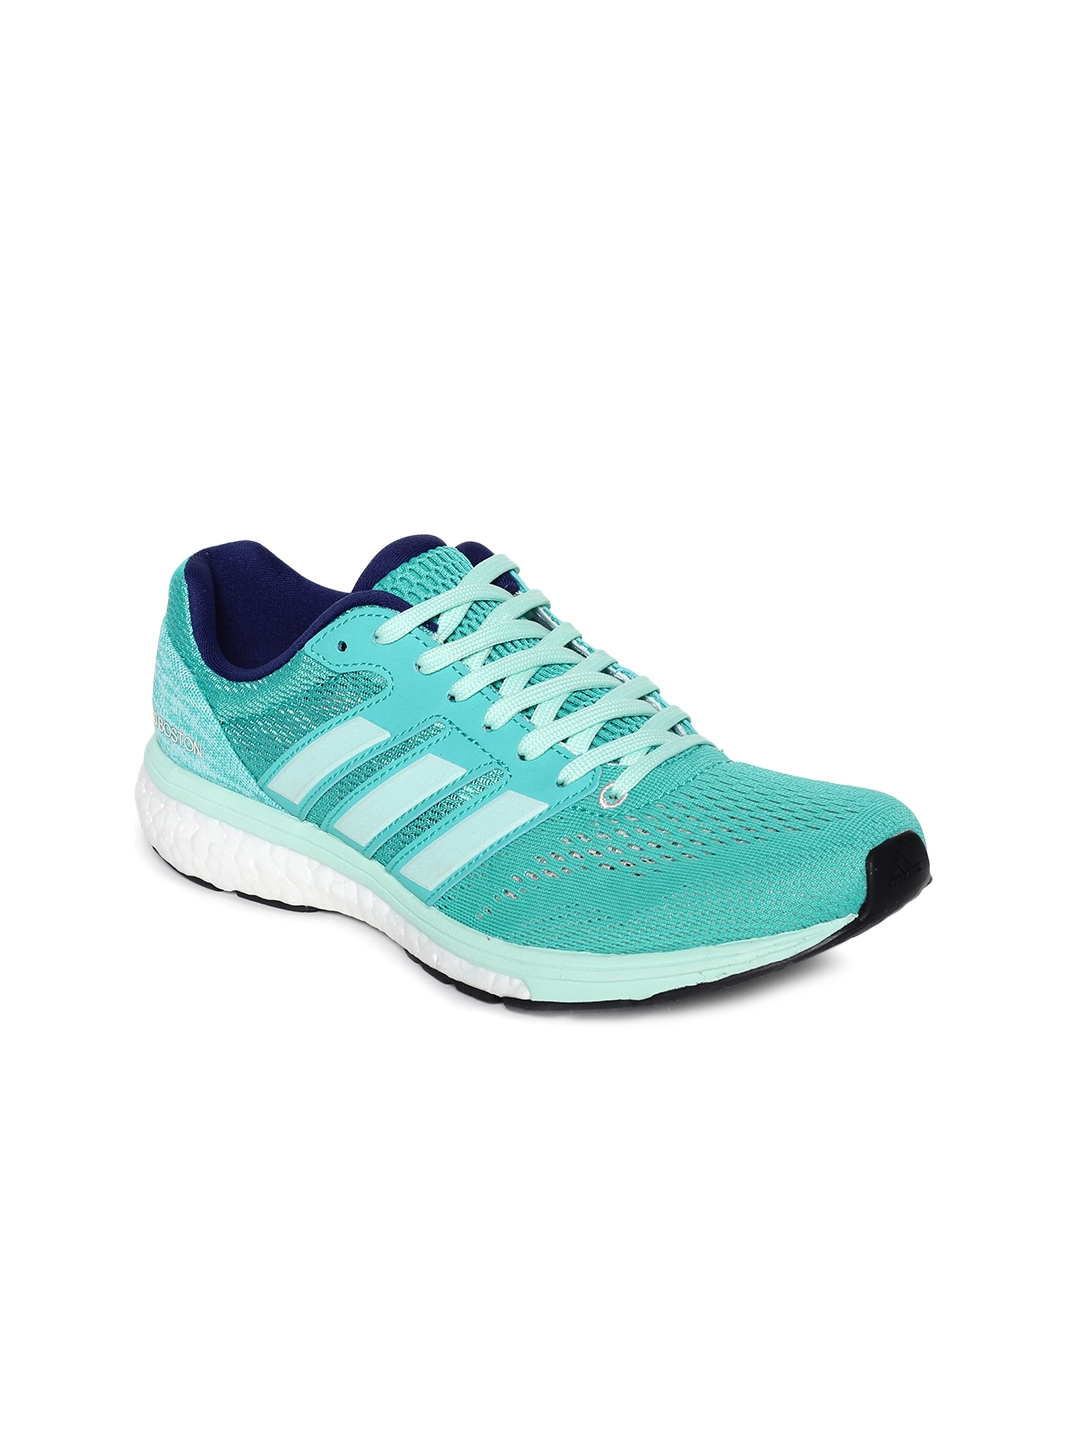 release date c132a de82e ADIDAS Women Blue ADIZERO BOSTON 7 W Running Shoes